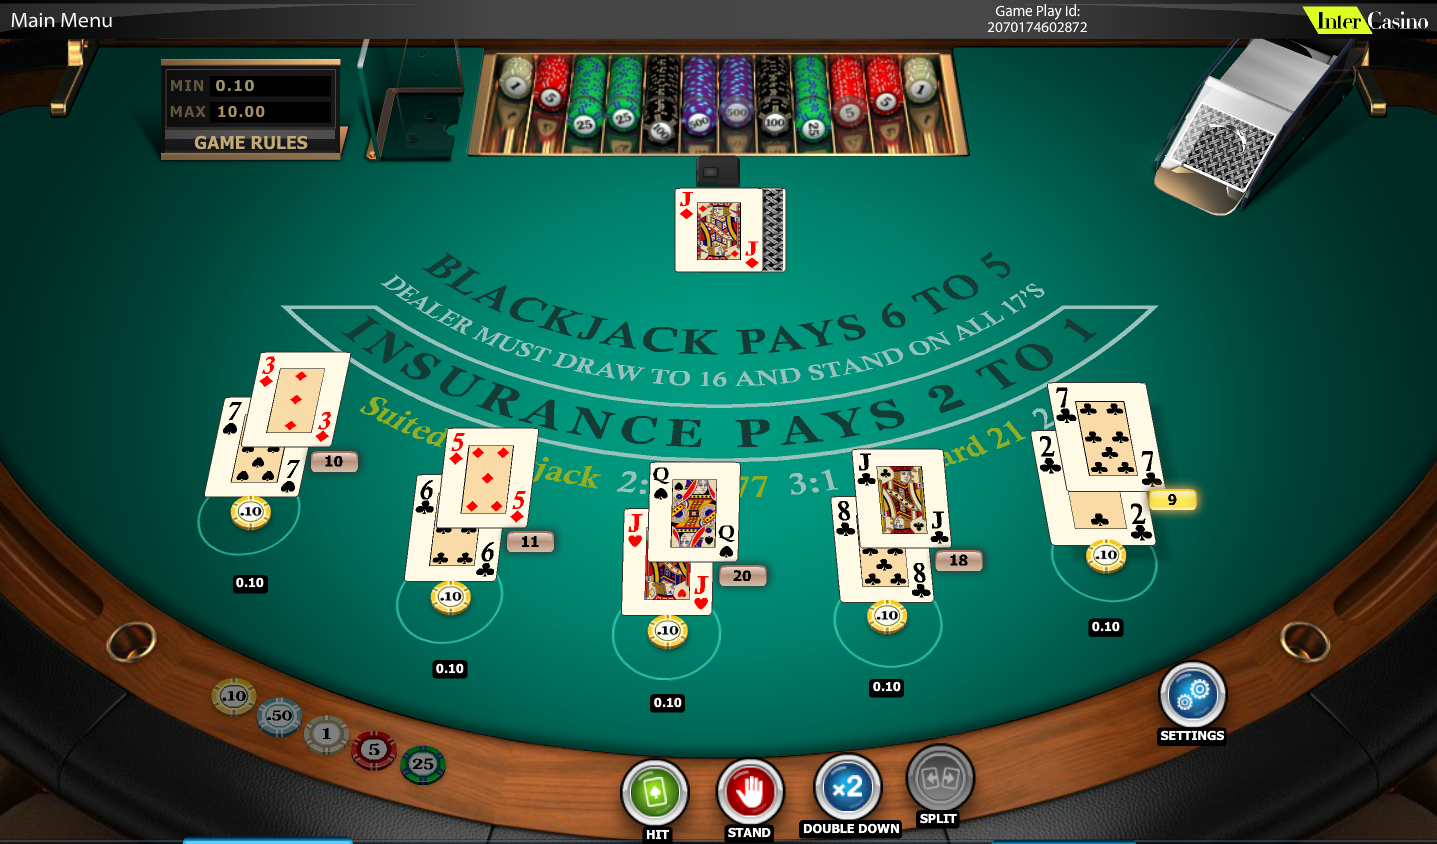 Blackjack table top view - Other Games